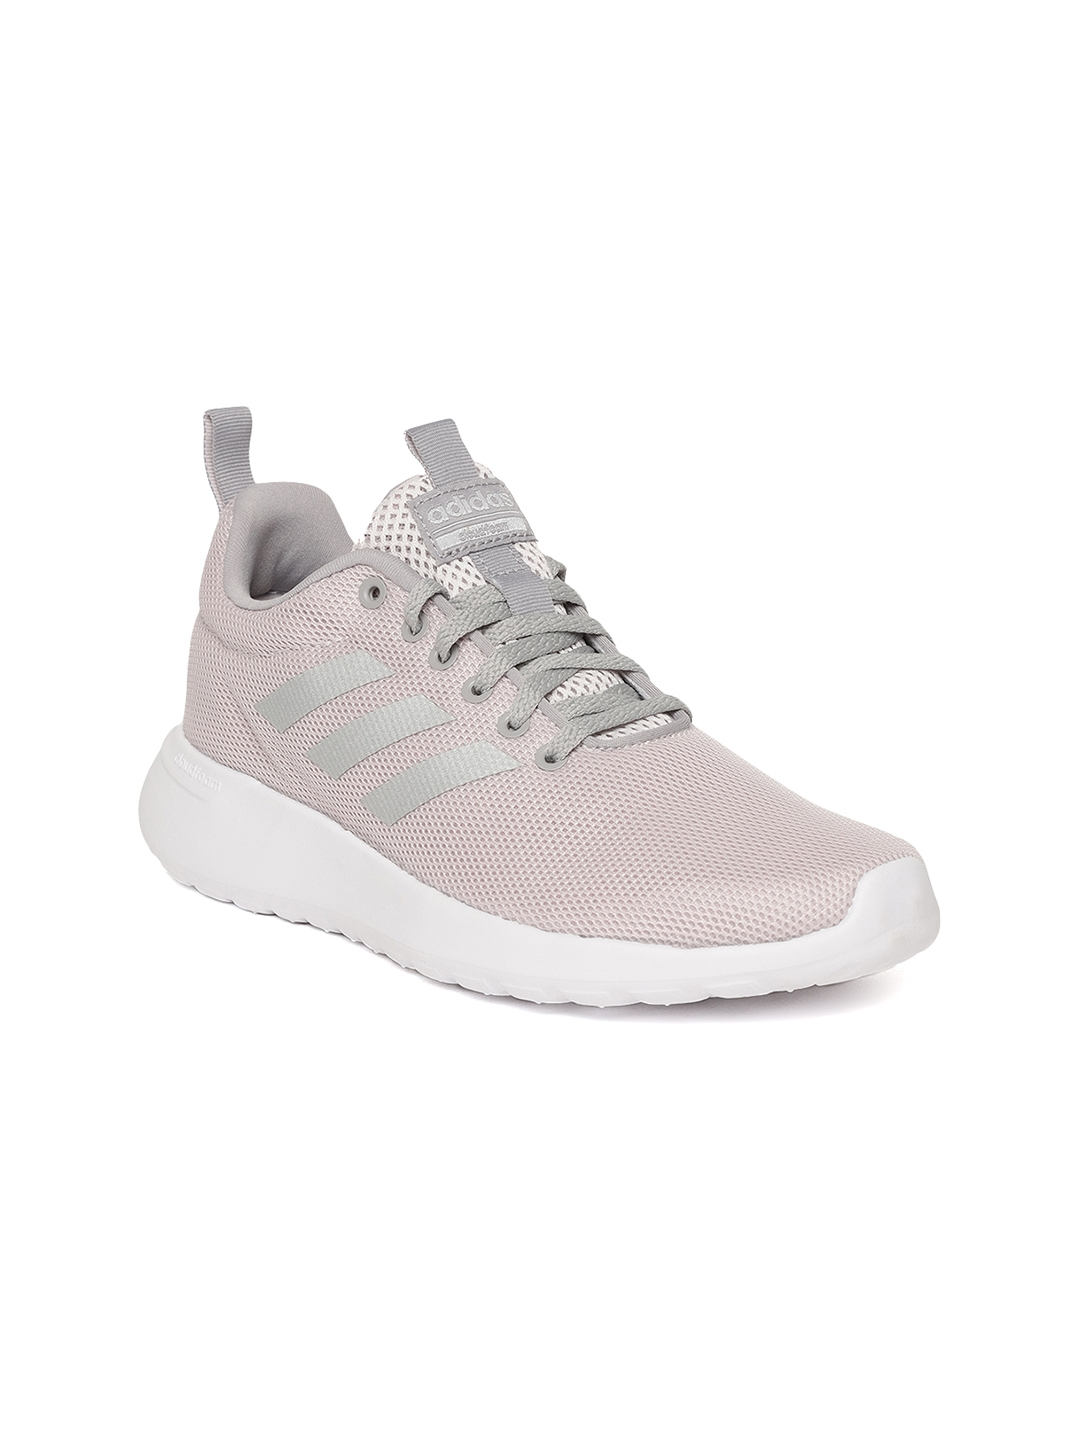 Buy Adidas Women Pink Lite Racer CLN Running Shoes - Sports Shoes ... d96d9d909d